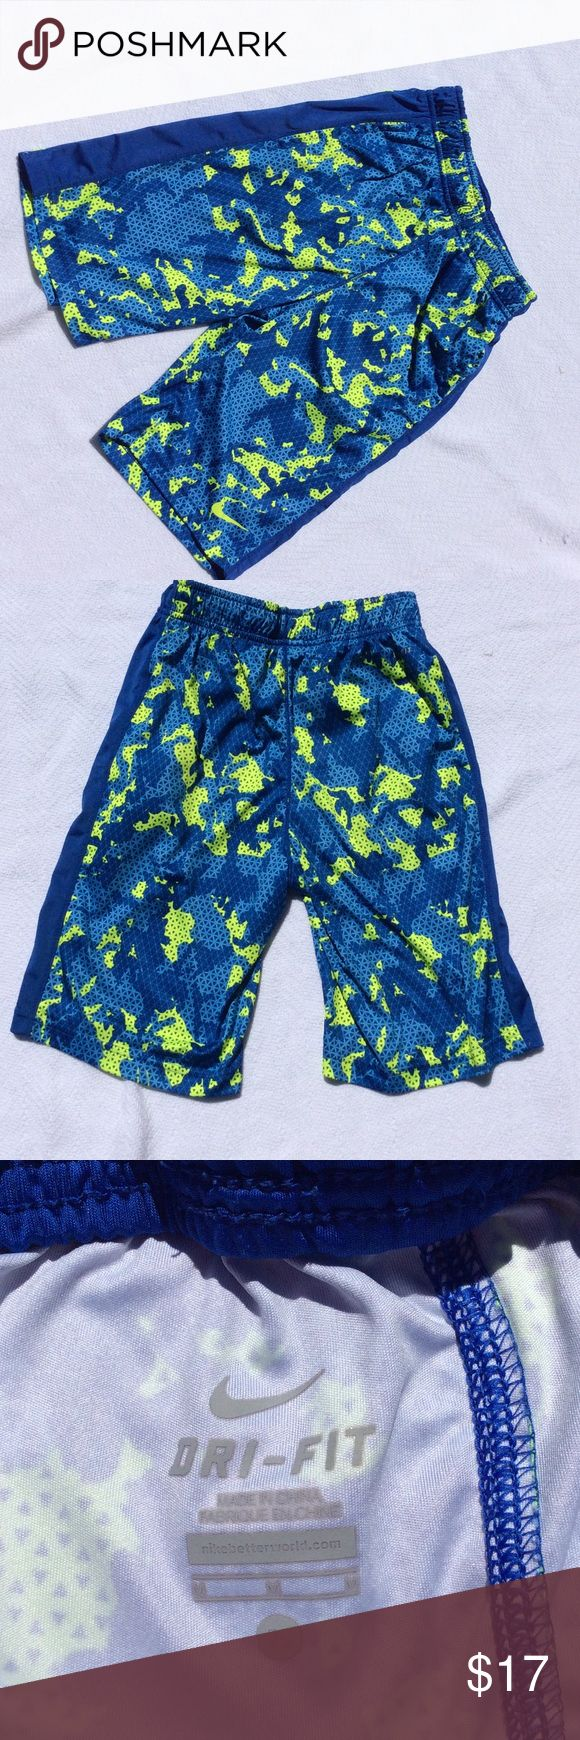 Boys Size M Nike Shorts Worn twice boys Nike shorts in a blue and yellow pattern. Has a solid blue stripe up he sides. Excellent condition! Nike Bottoms Shorts